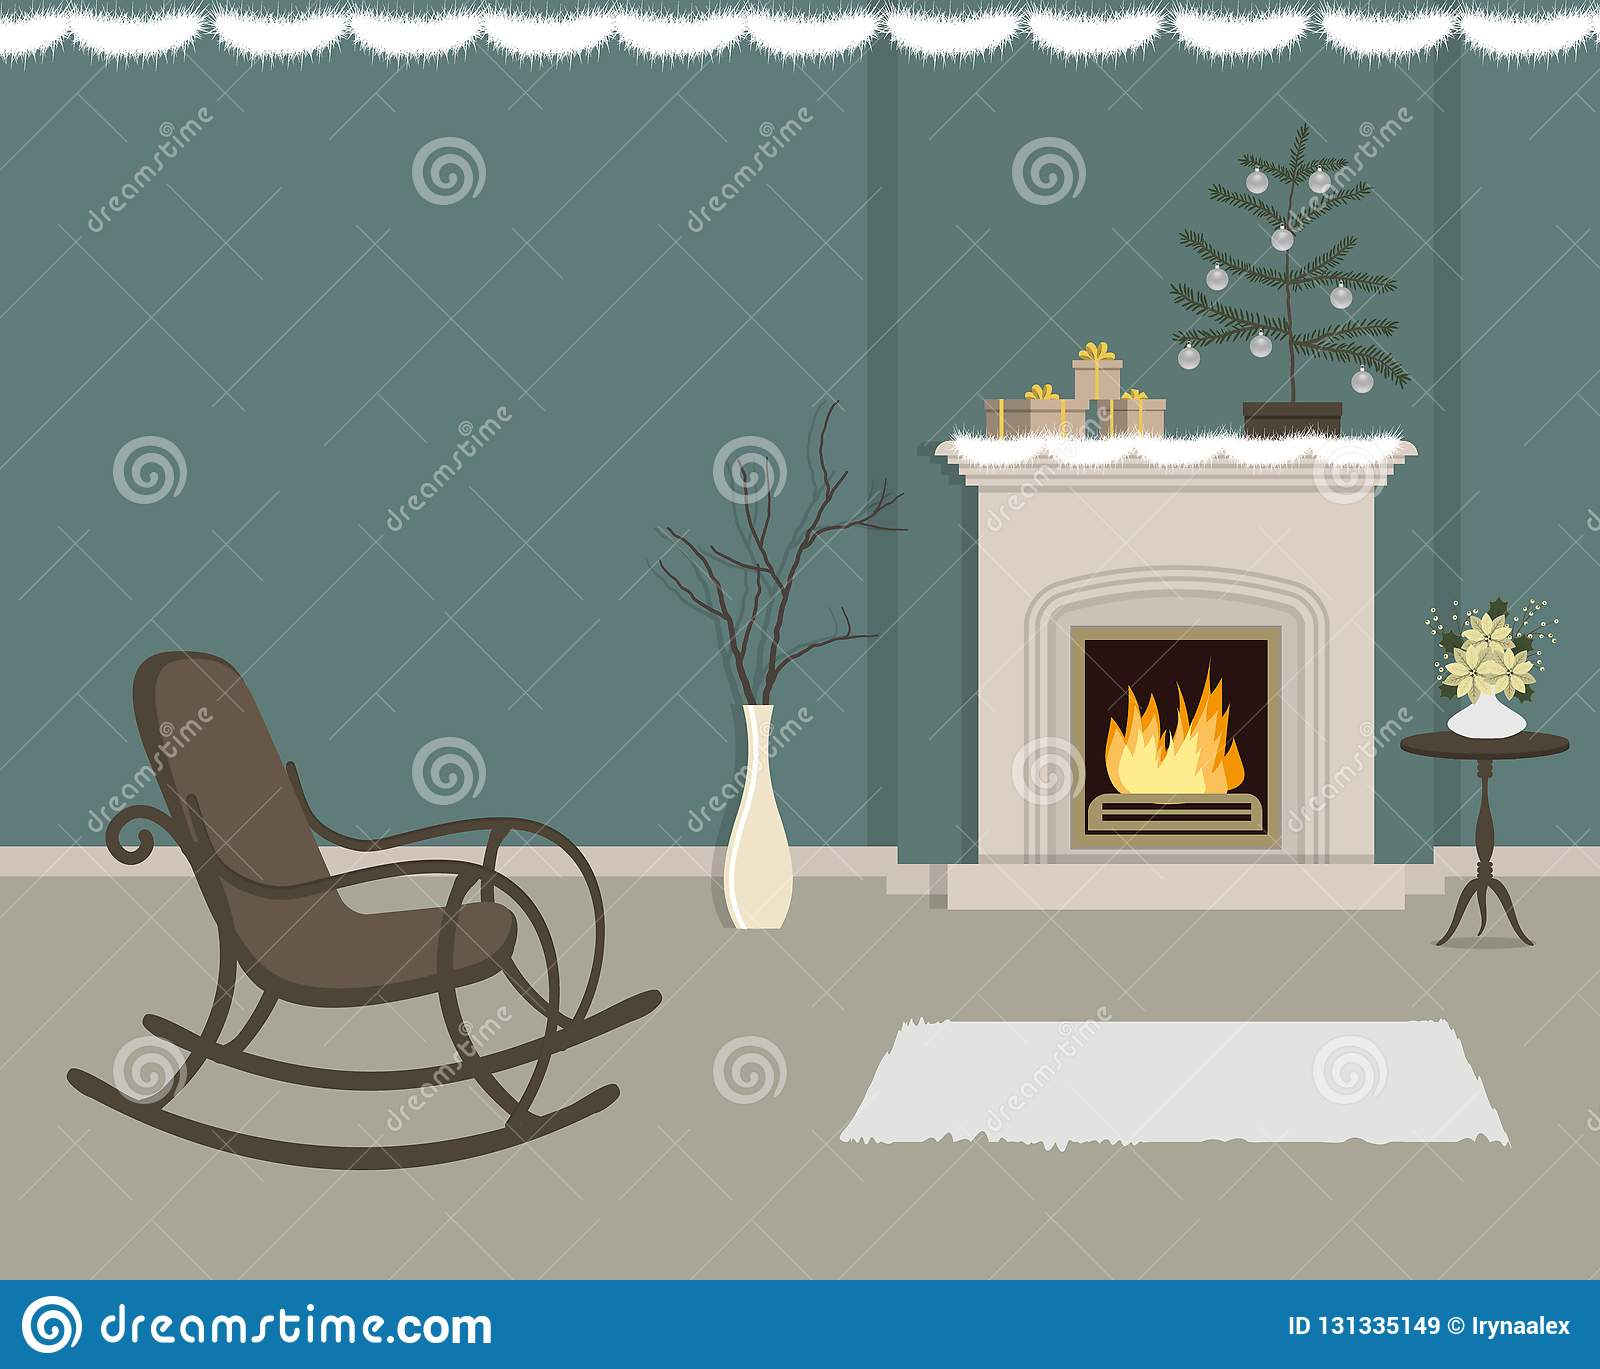 Living room with fireplace, decorated with Christmas decorations